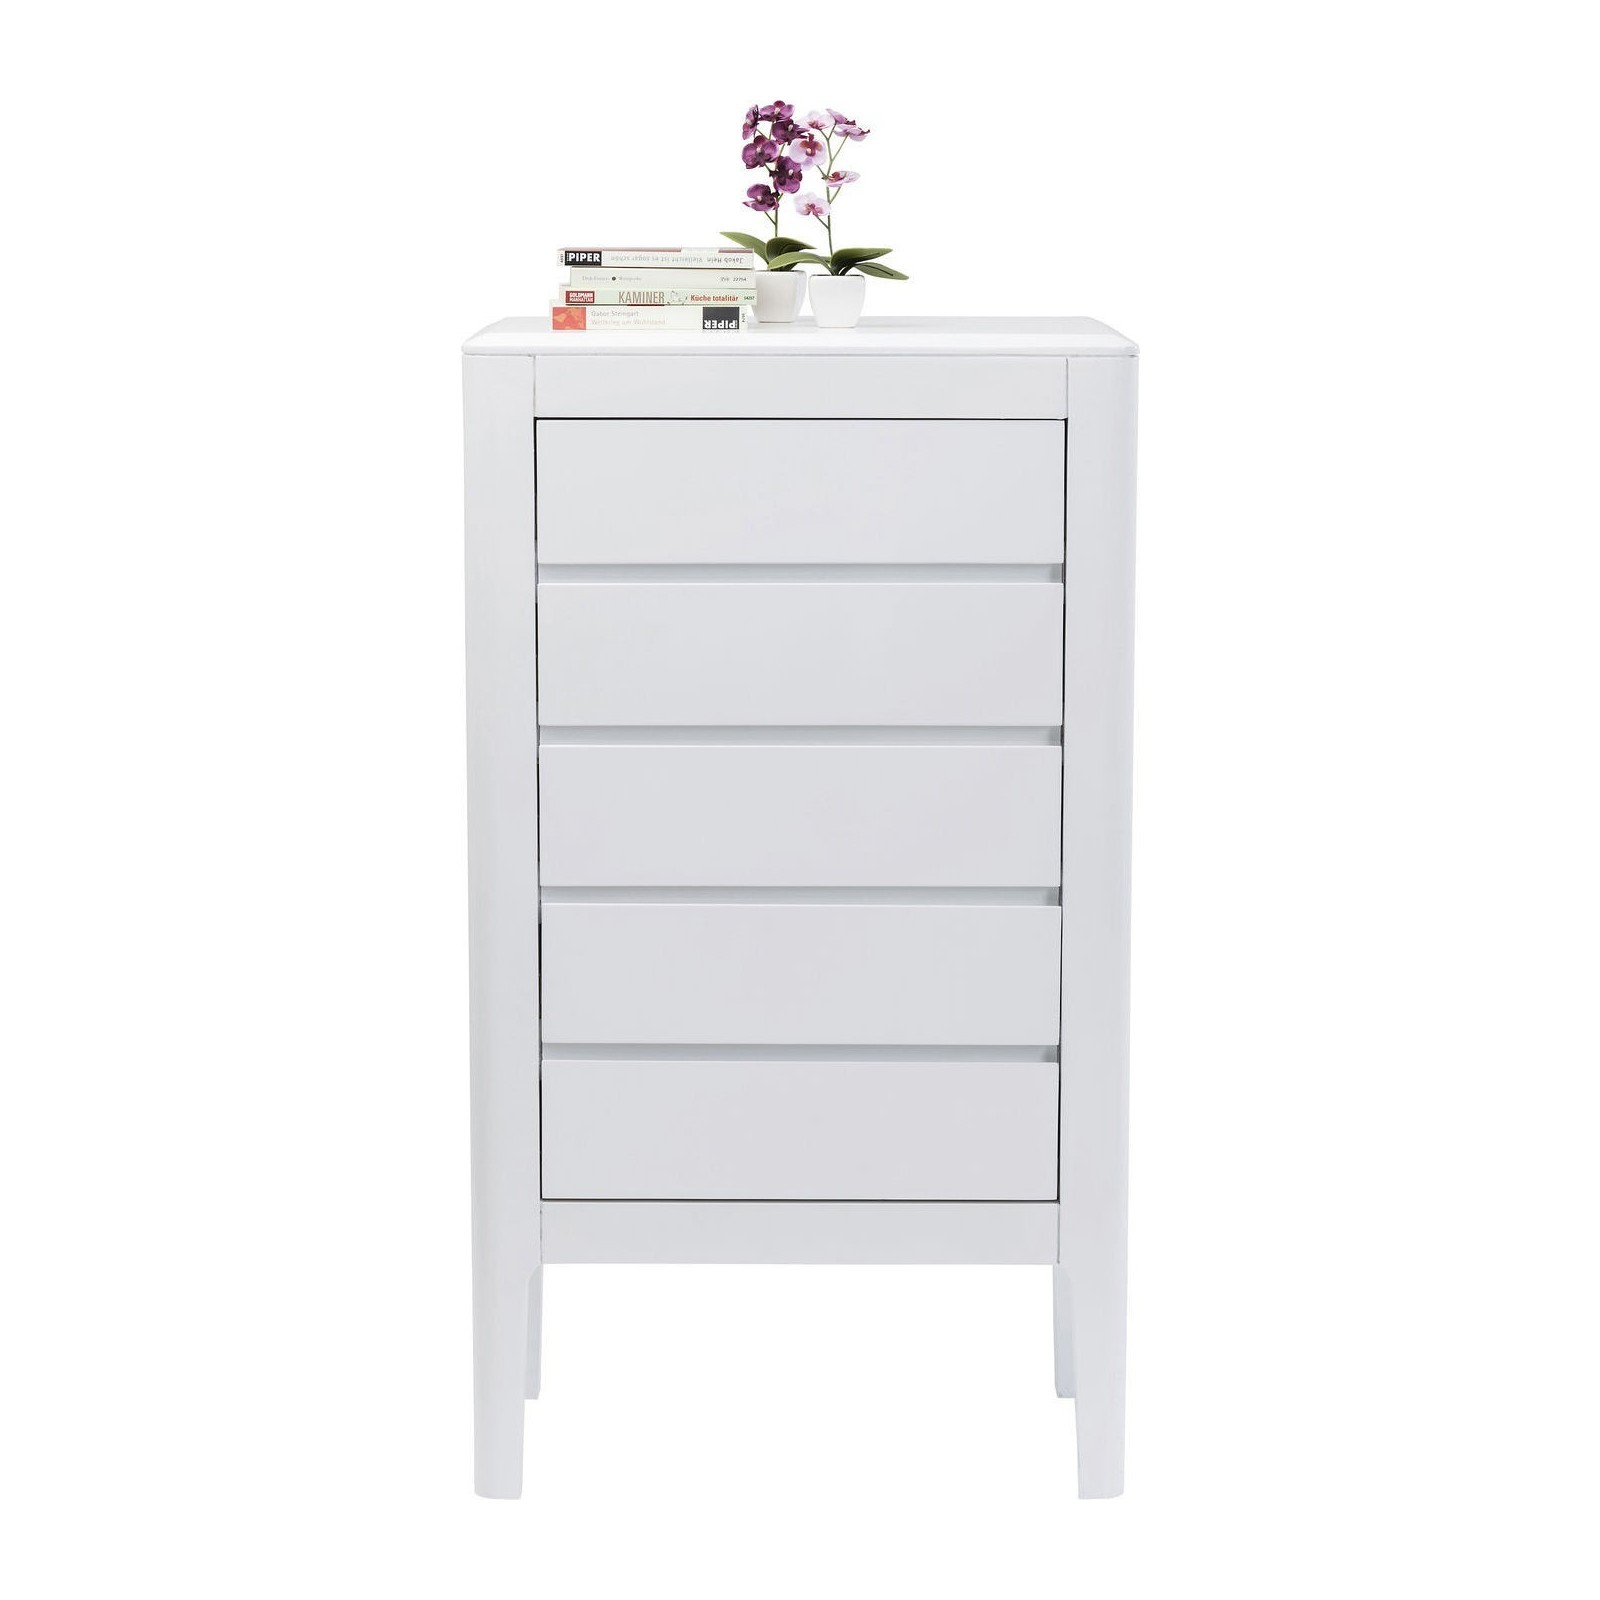 Commode haute Brooklyn blanche 5 tiroirs Kare Design